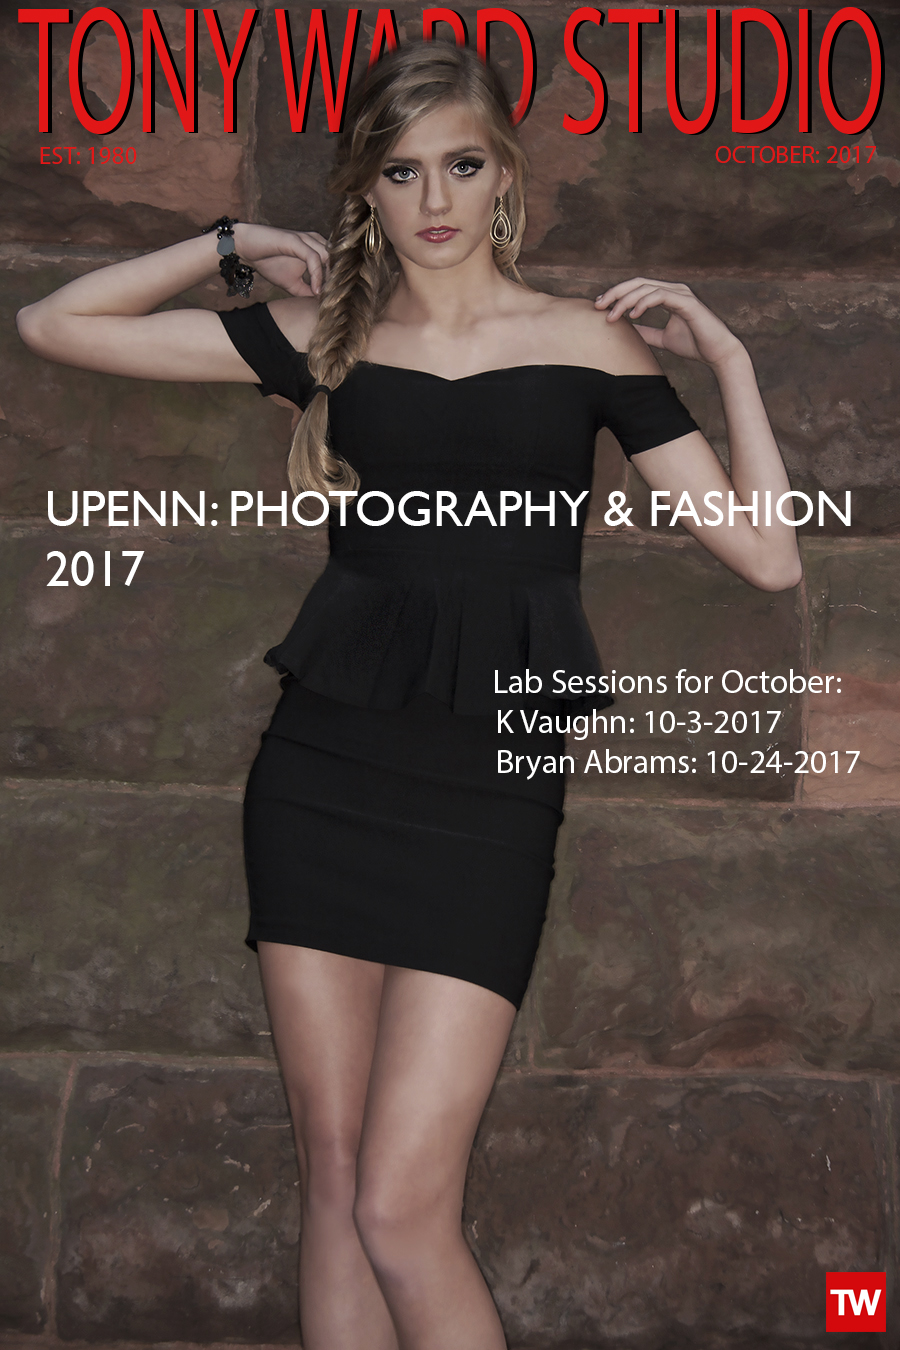 Tony_Ward_Studio_Cover_October_2017_lab_sessions_K_Vaughn_Bryan_Abrams_photography_fashion